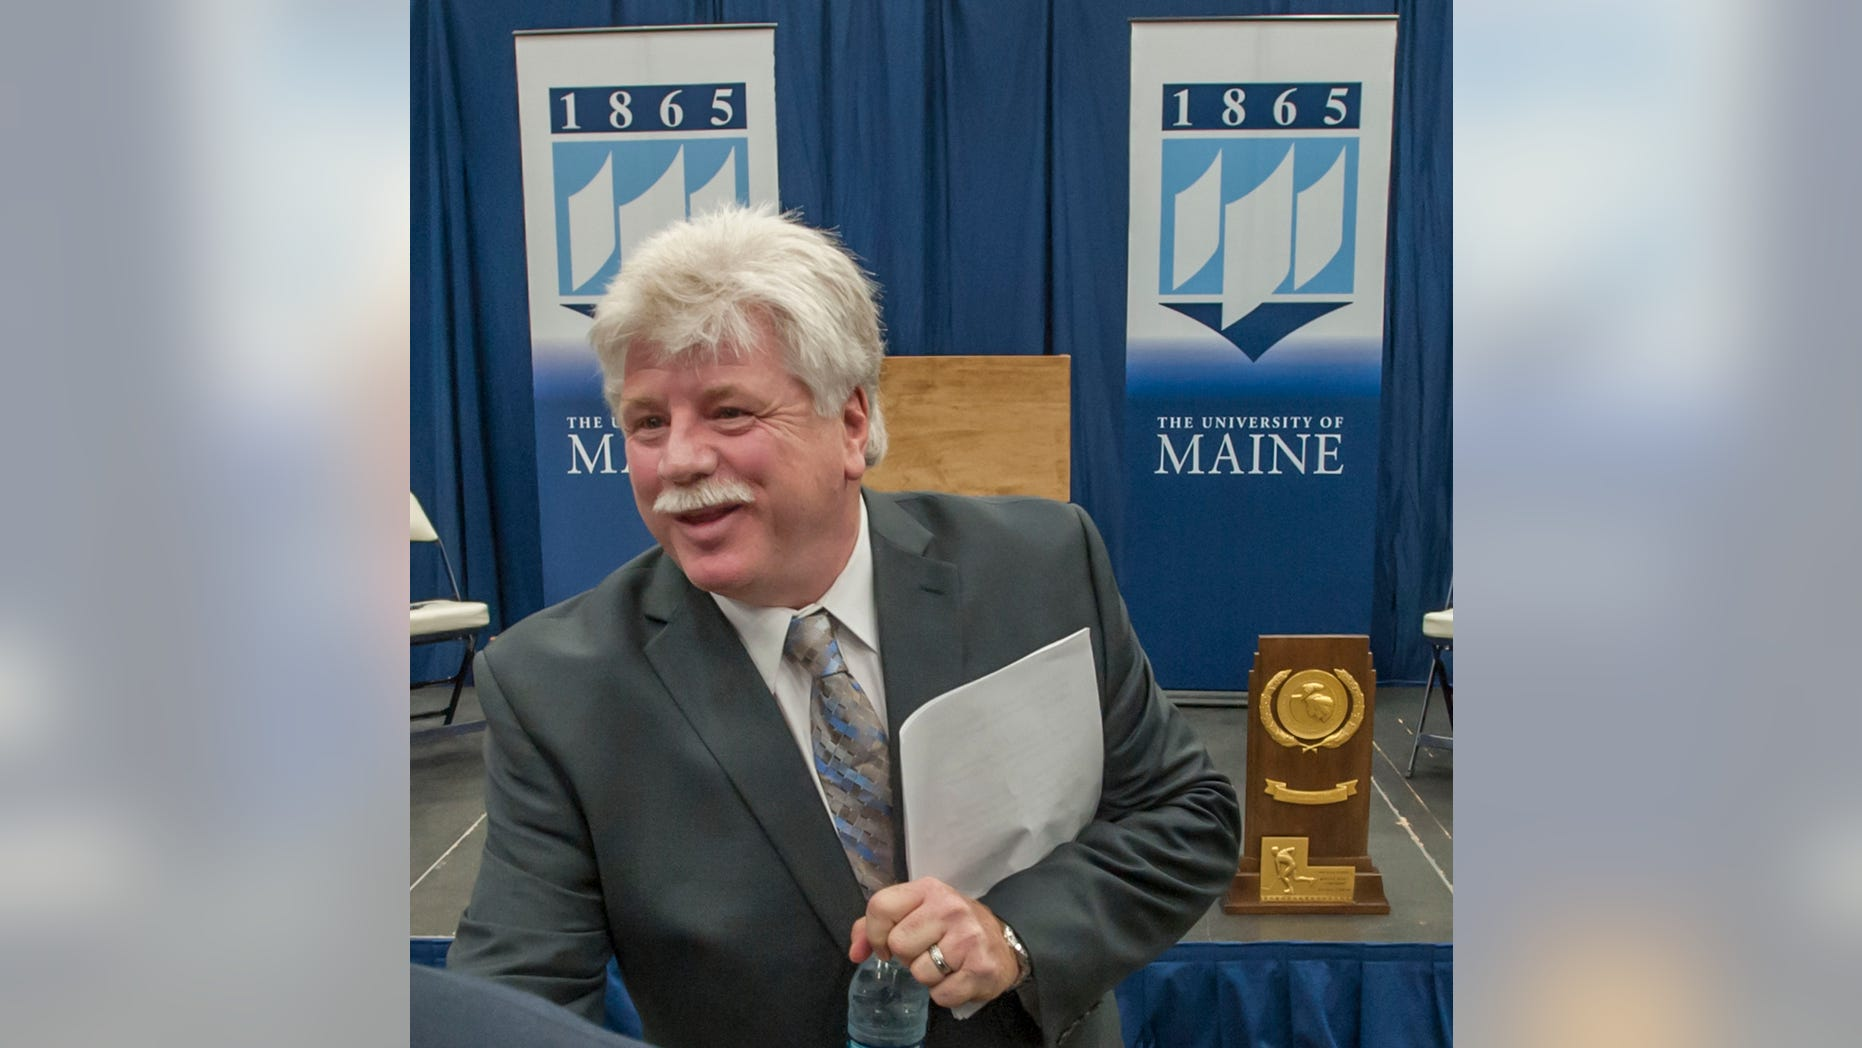 "FILE - In this May 28, 2013 file photo, Dennis ""Red"" Gendron  speaks to well-wishers after being introduced as the new men's hockey coach at the University of Maine, in Orono, Maine. Gendron has coached championship hockey teams in high school, college and the NHL. The hockey faithful are hoping he can now restore the luster to the University of Maine hockey program. (AP Photo/Michael C. York, File)"